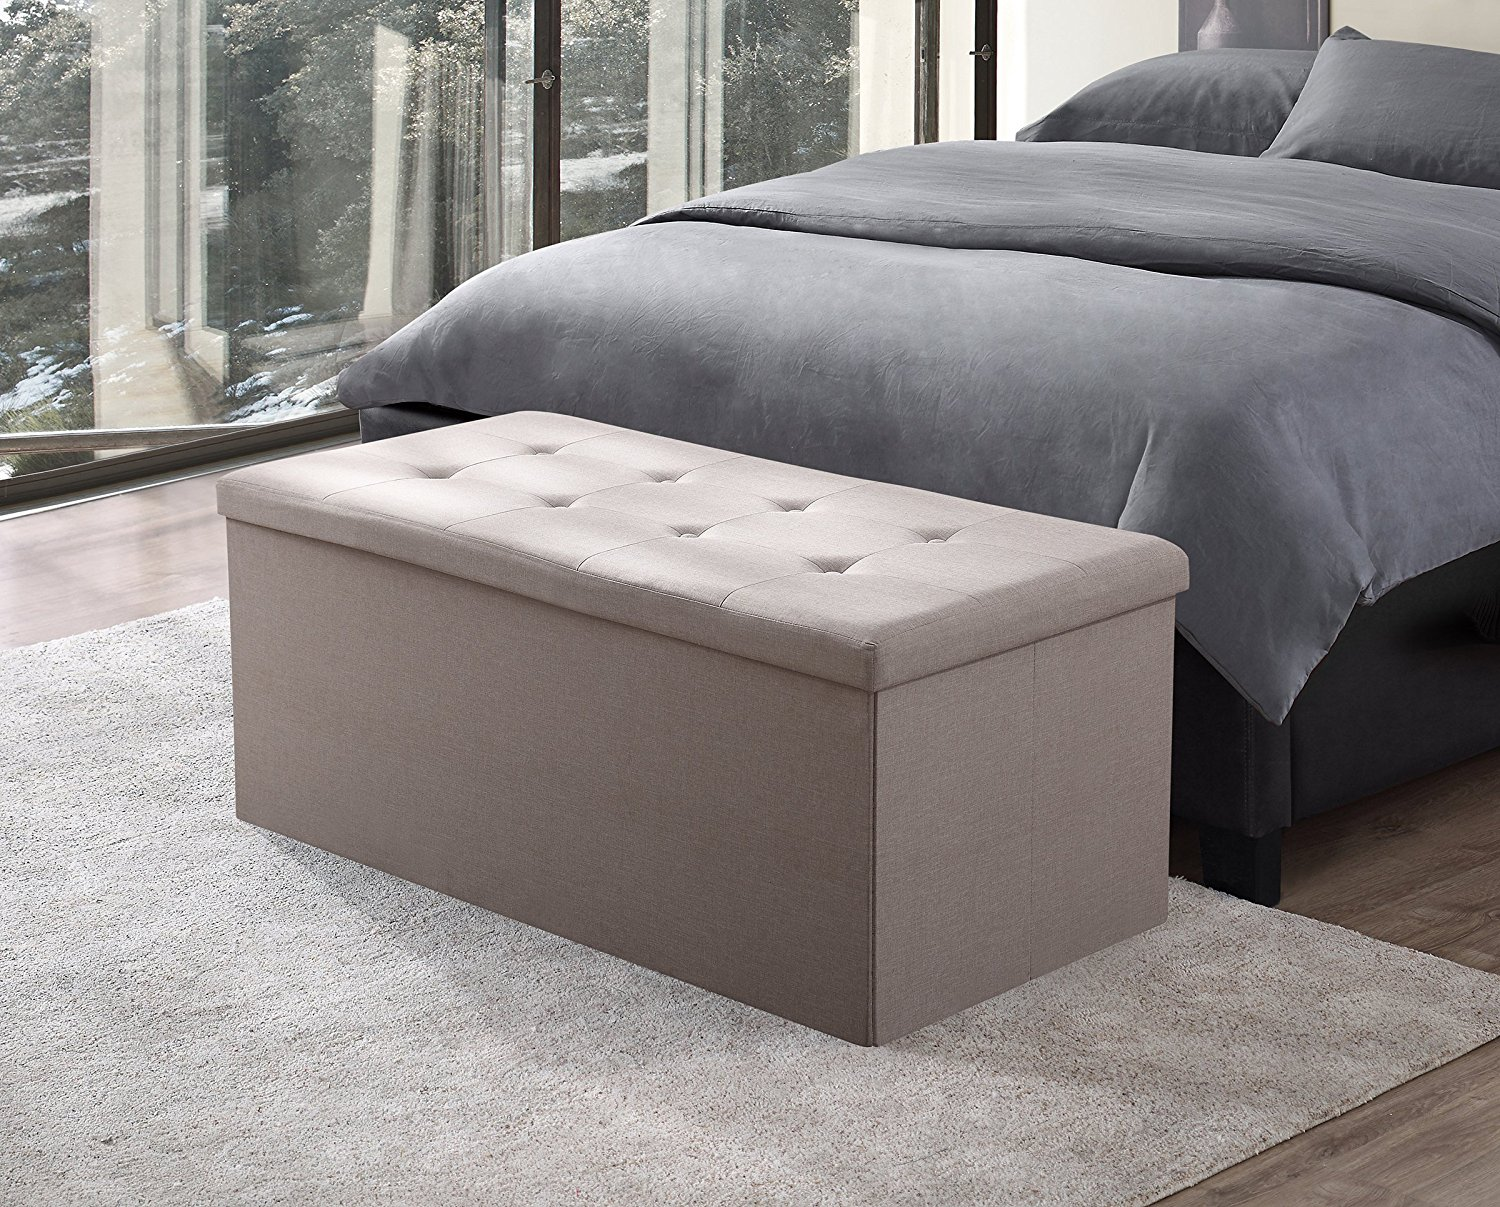 Bed End Storage Cheap Bed Bench Storage Find Bed Bench Storage Deals On Line At